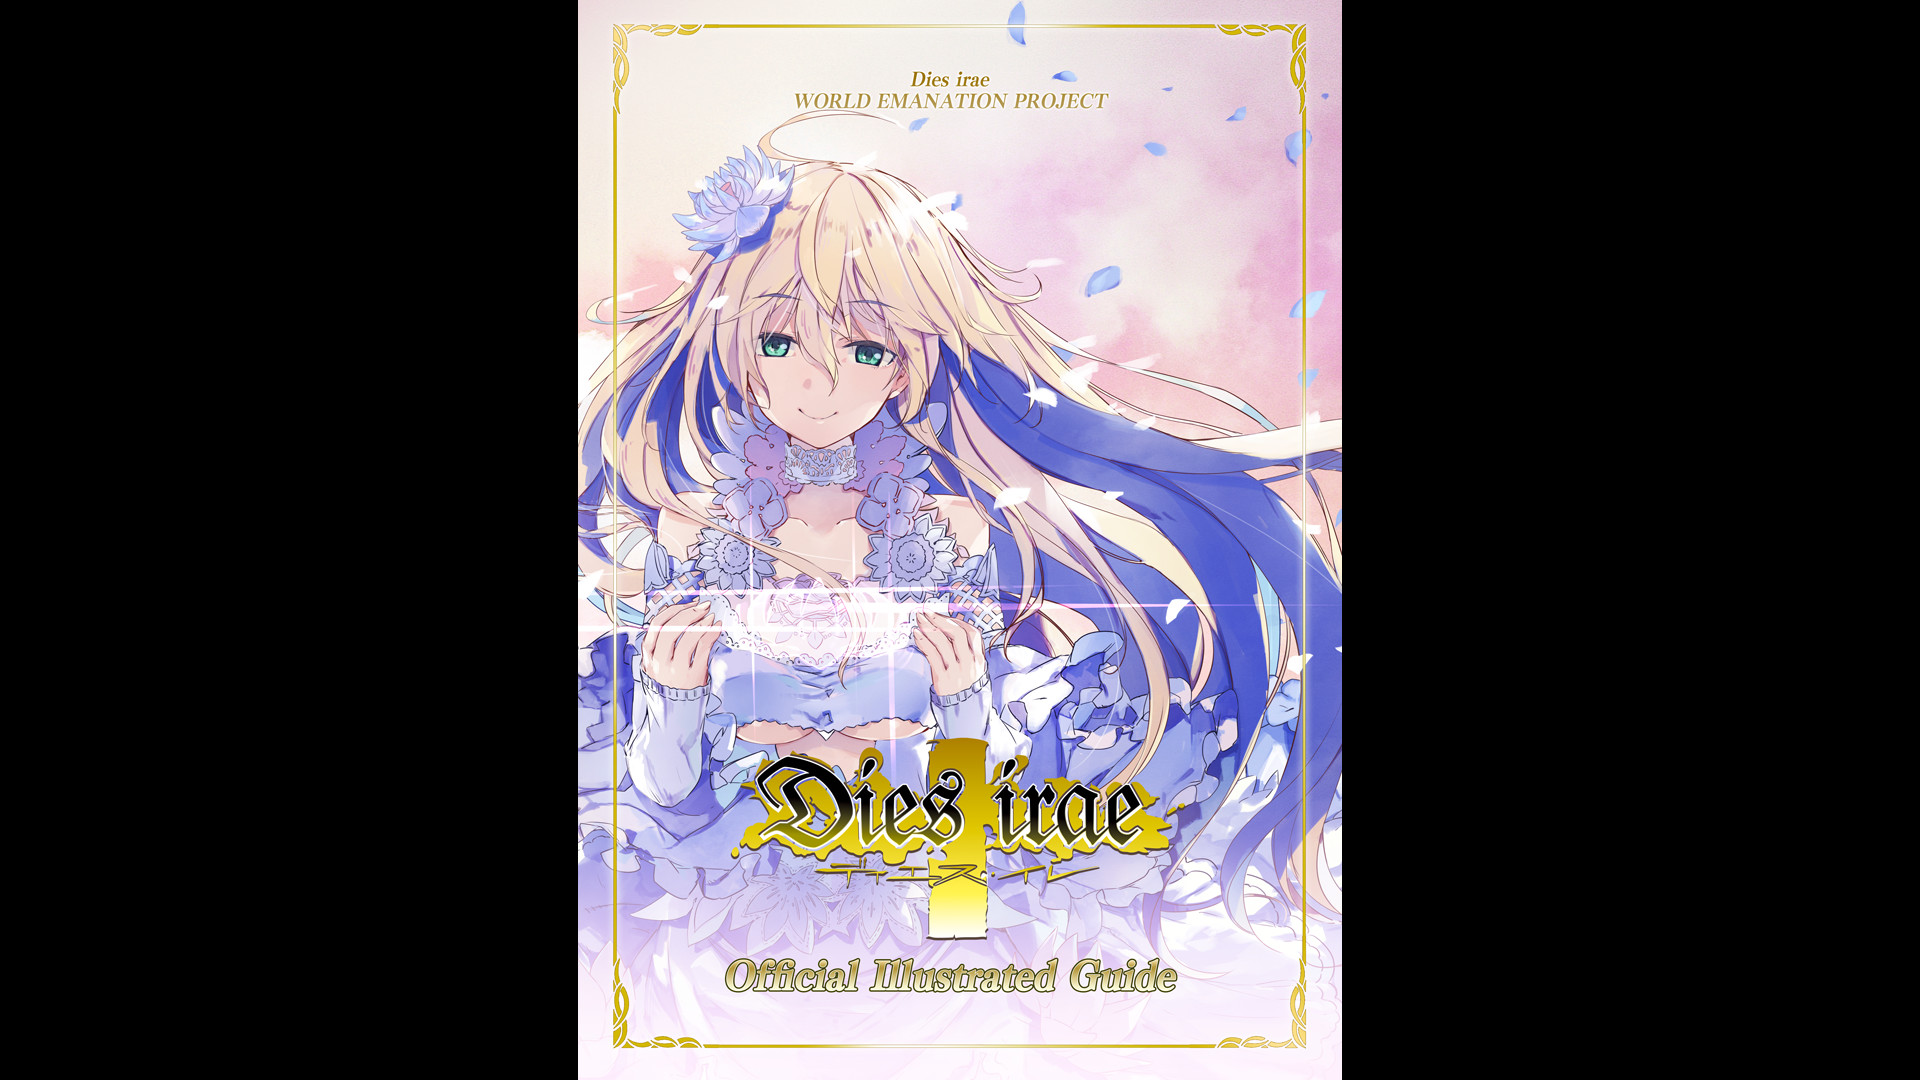 Dies irae ~Amantes amentes~ - Official Illustrated Guide